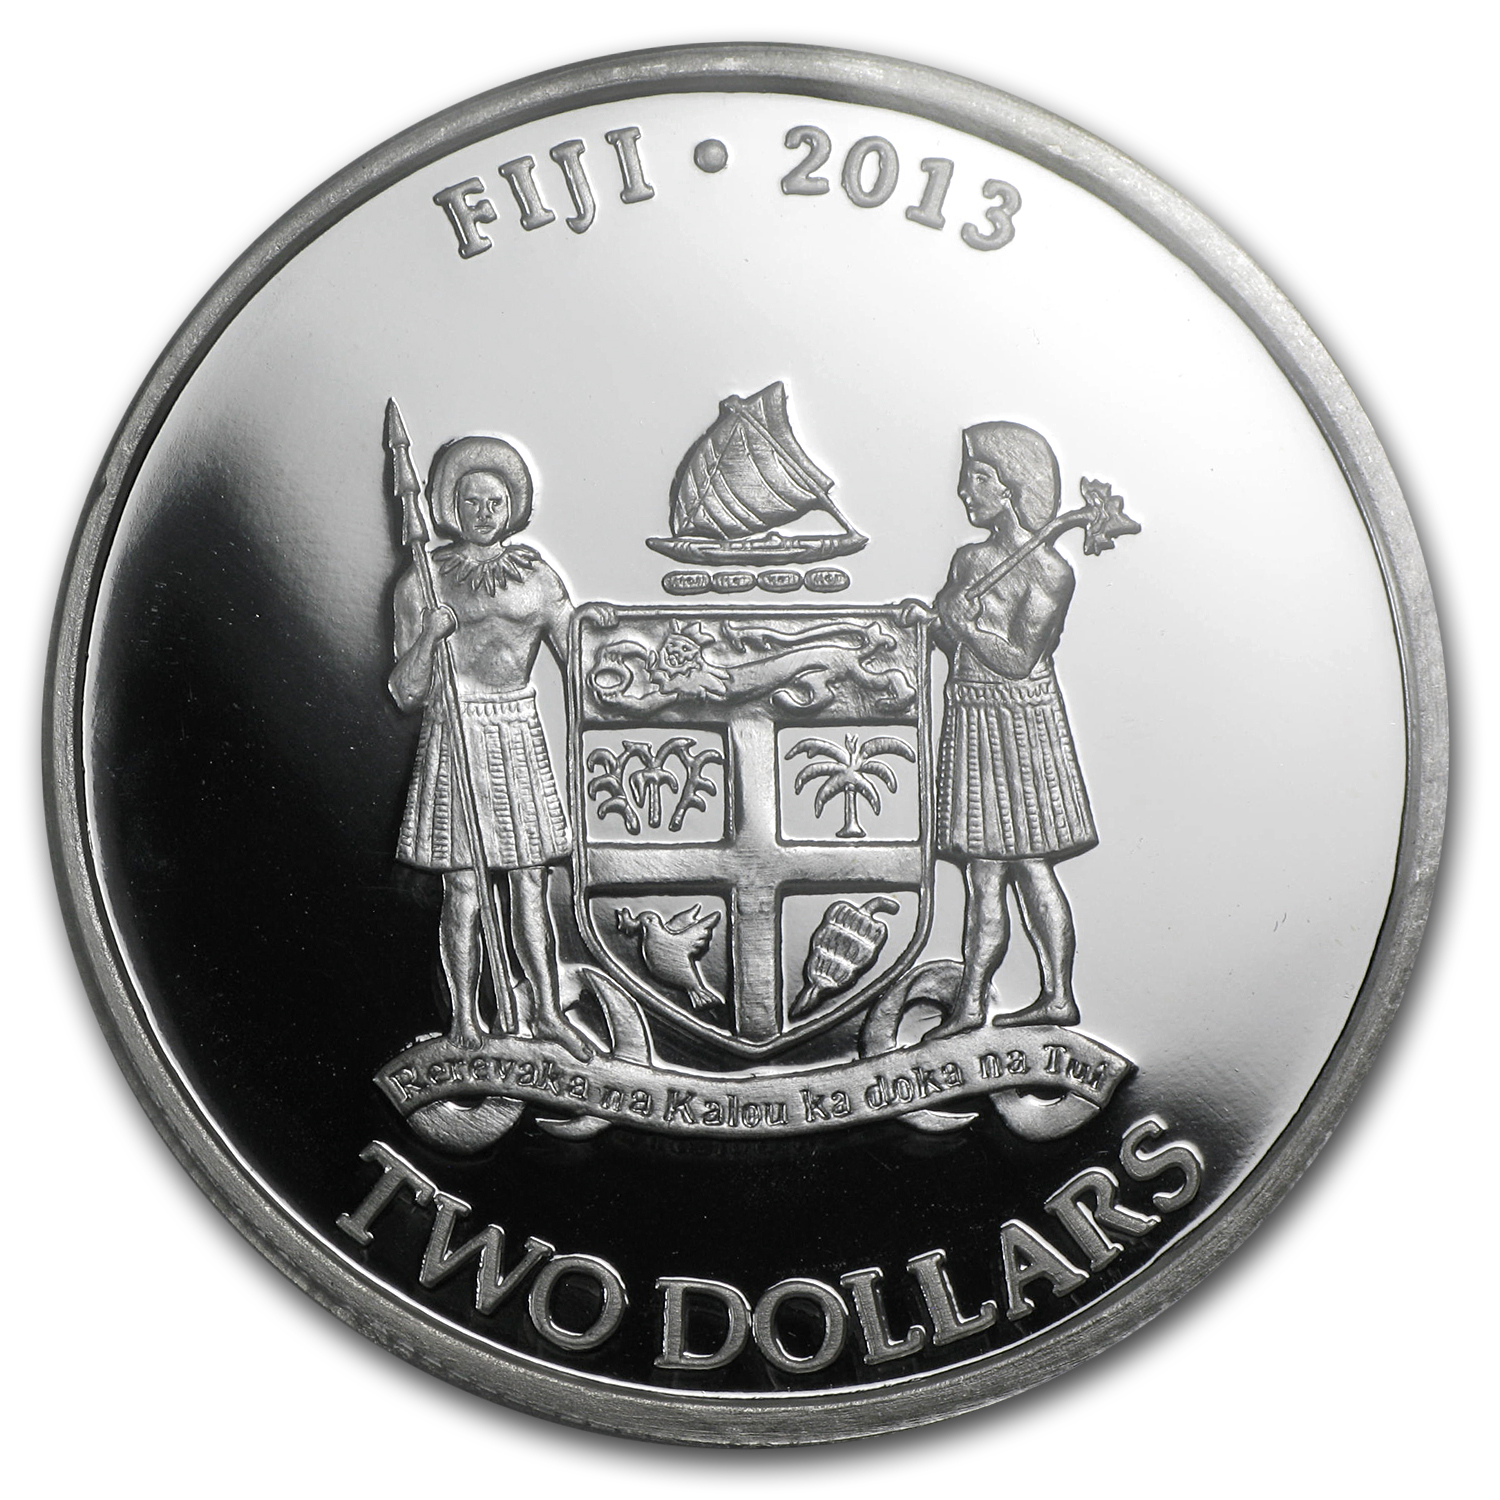 2013 Fiji 1 oz Silver $2 Taku MS-70 PCGS (First Strike)